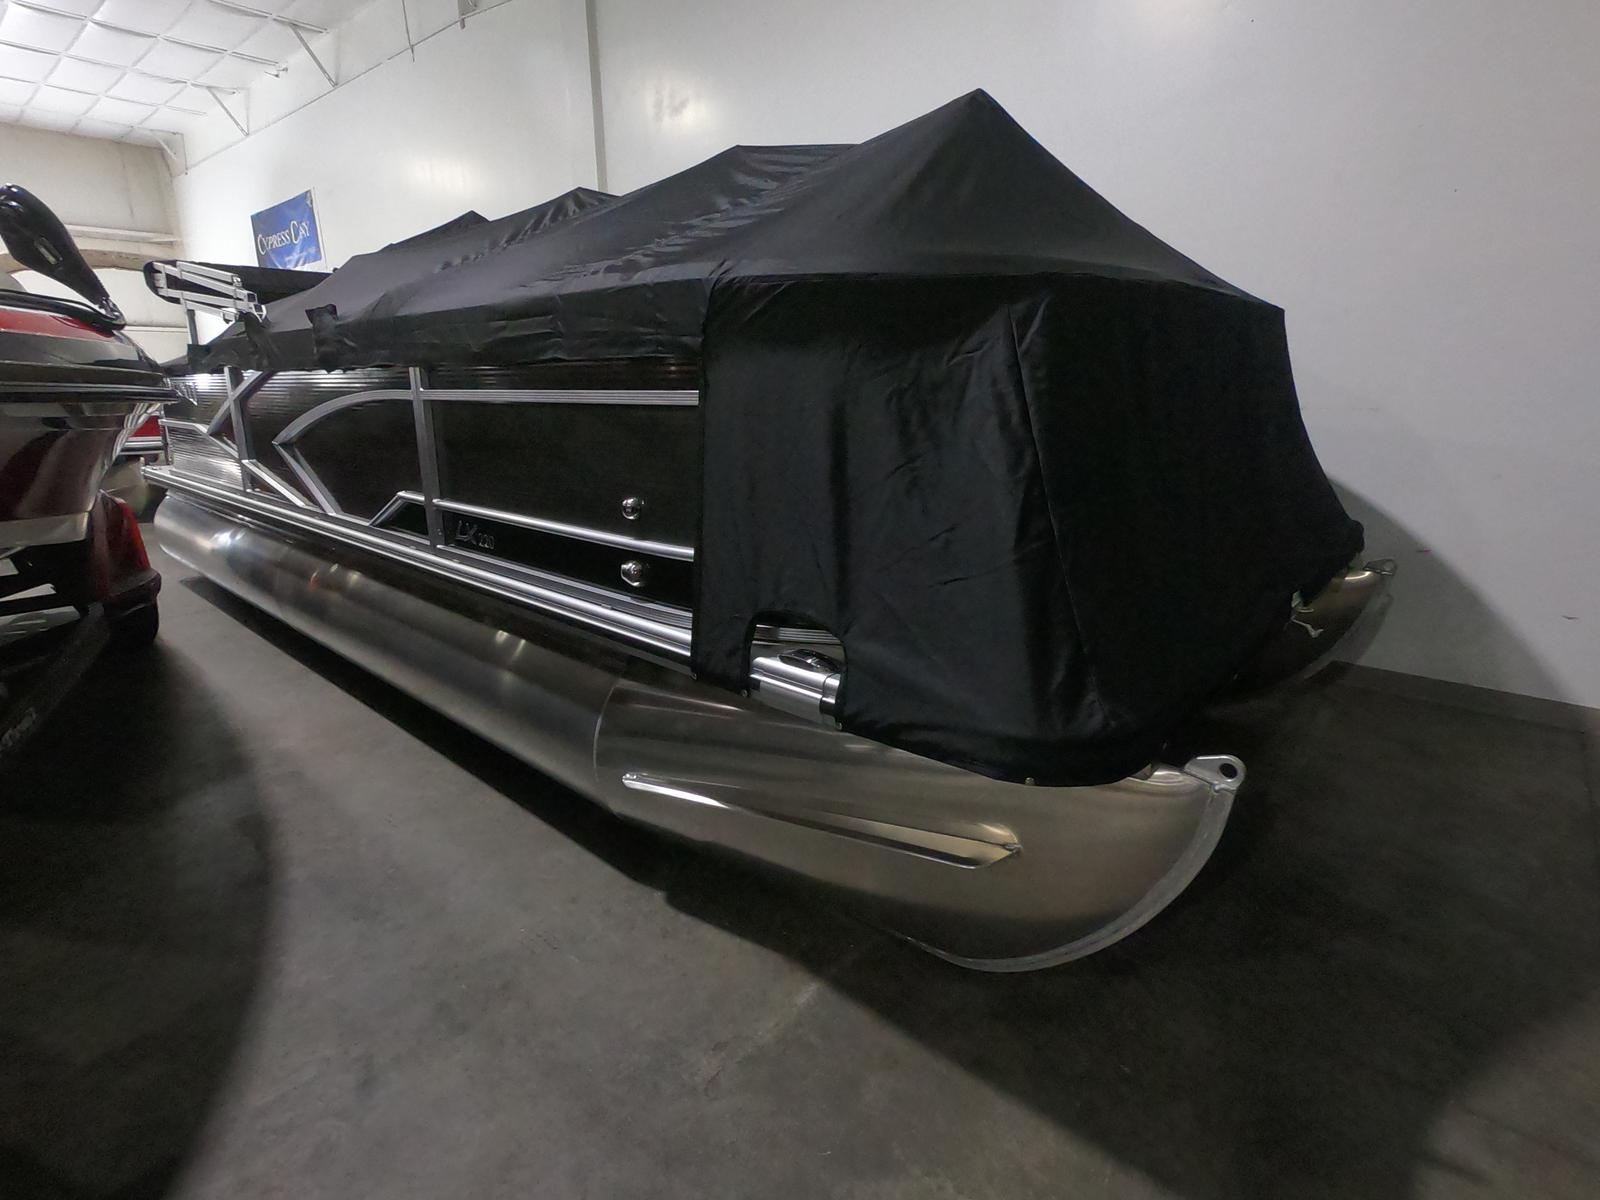 2019 Lund Lx220 Fish And Cruise For Sale In Ham Lake Mn Rapid Marine